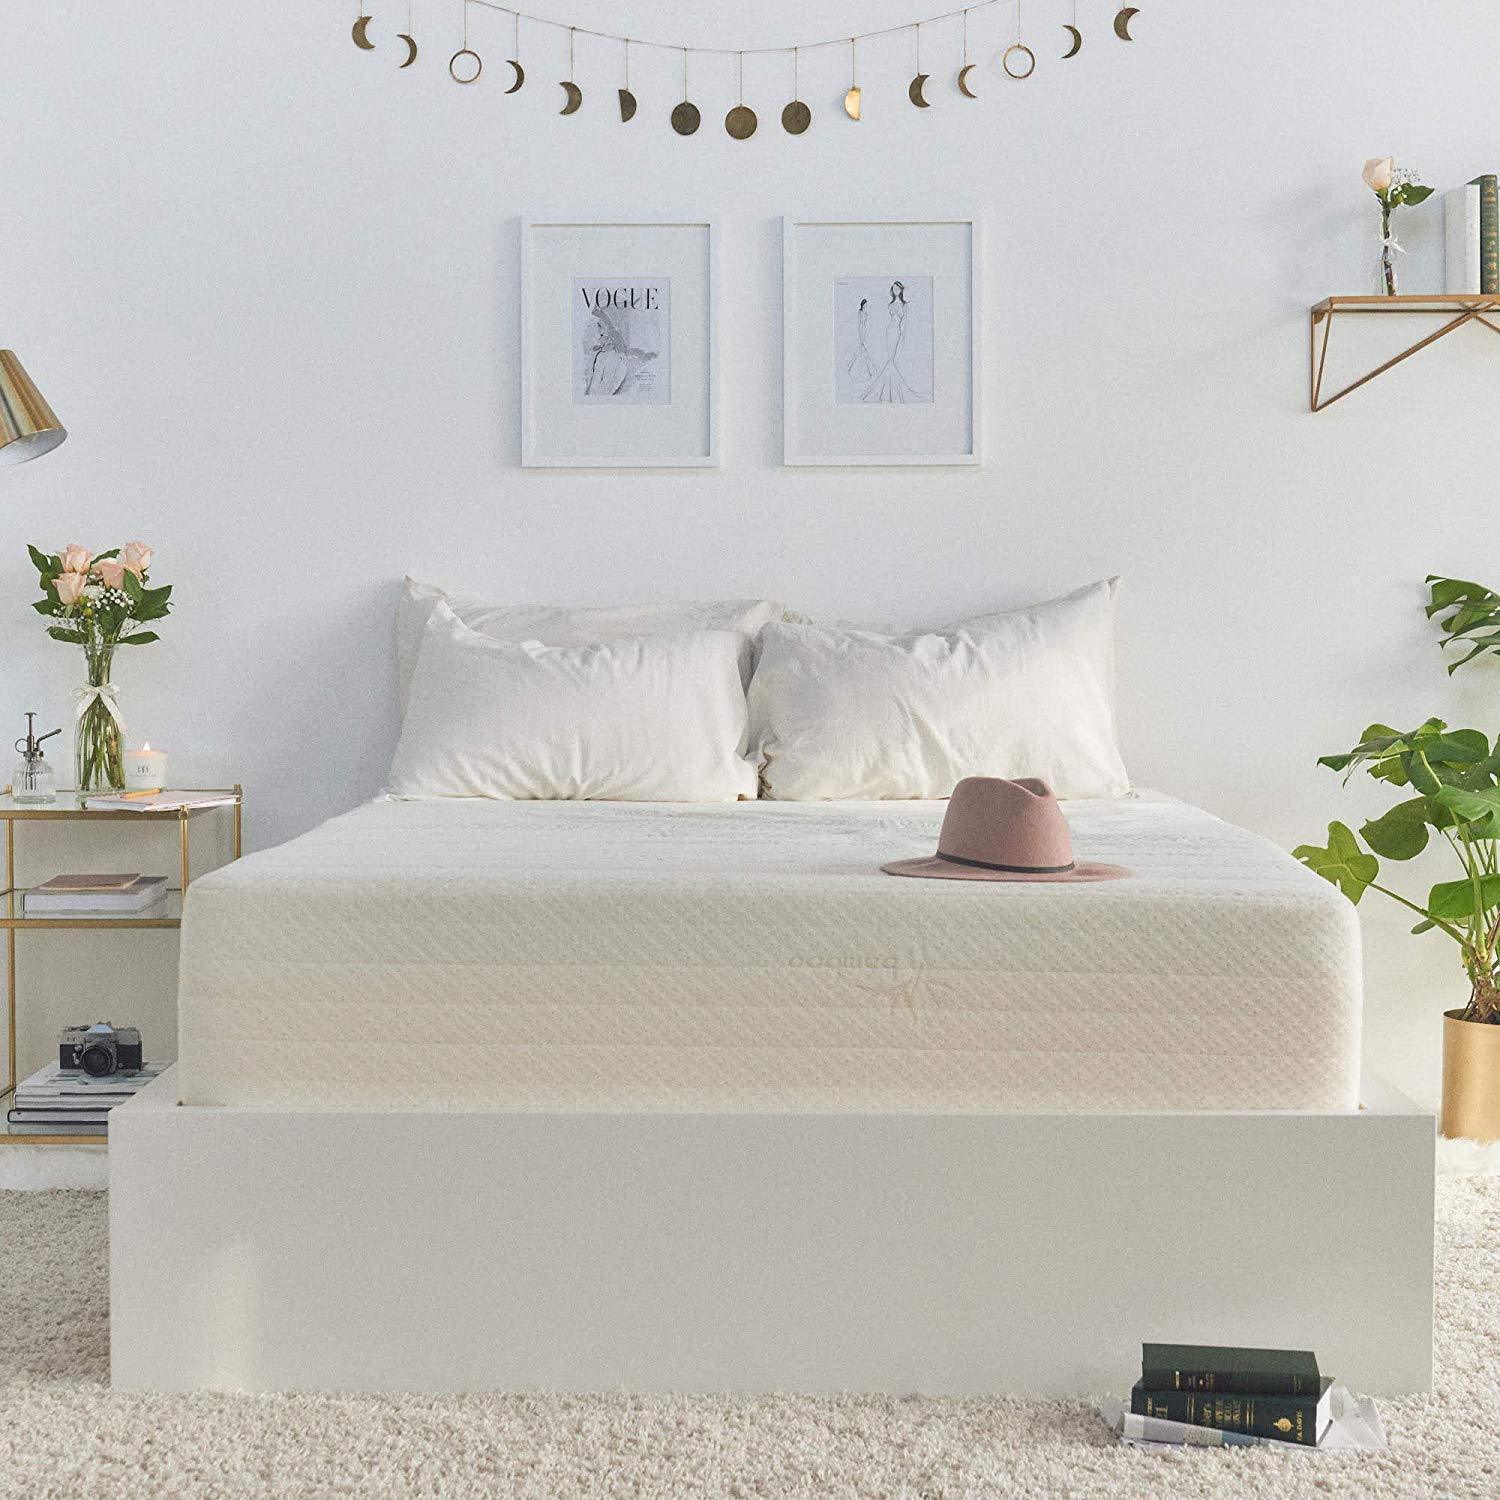 Brentwood Home Cypress Mattress, Bamboo Derived Rayon Cover, Gel Memory Foam, Made in USA, 9-Inch, Twin